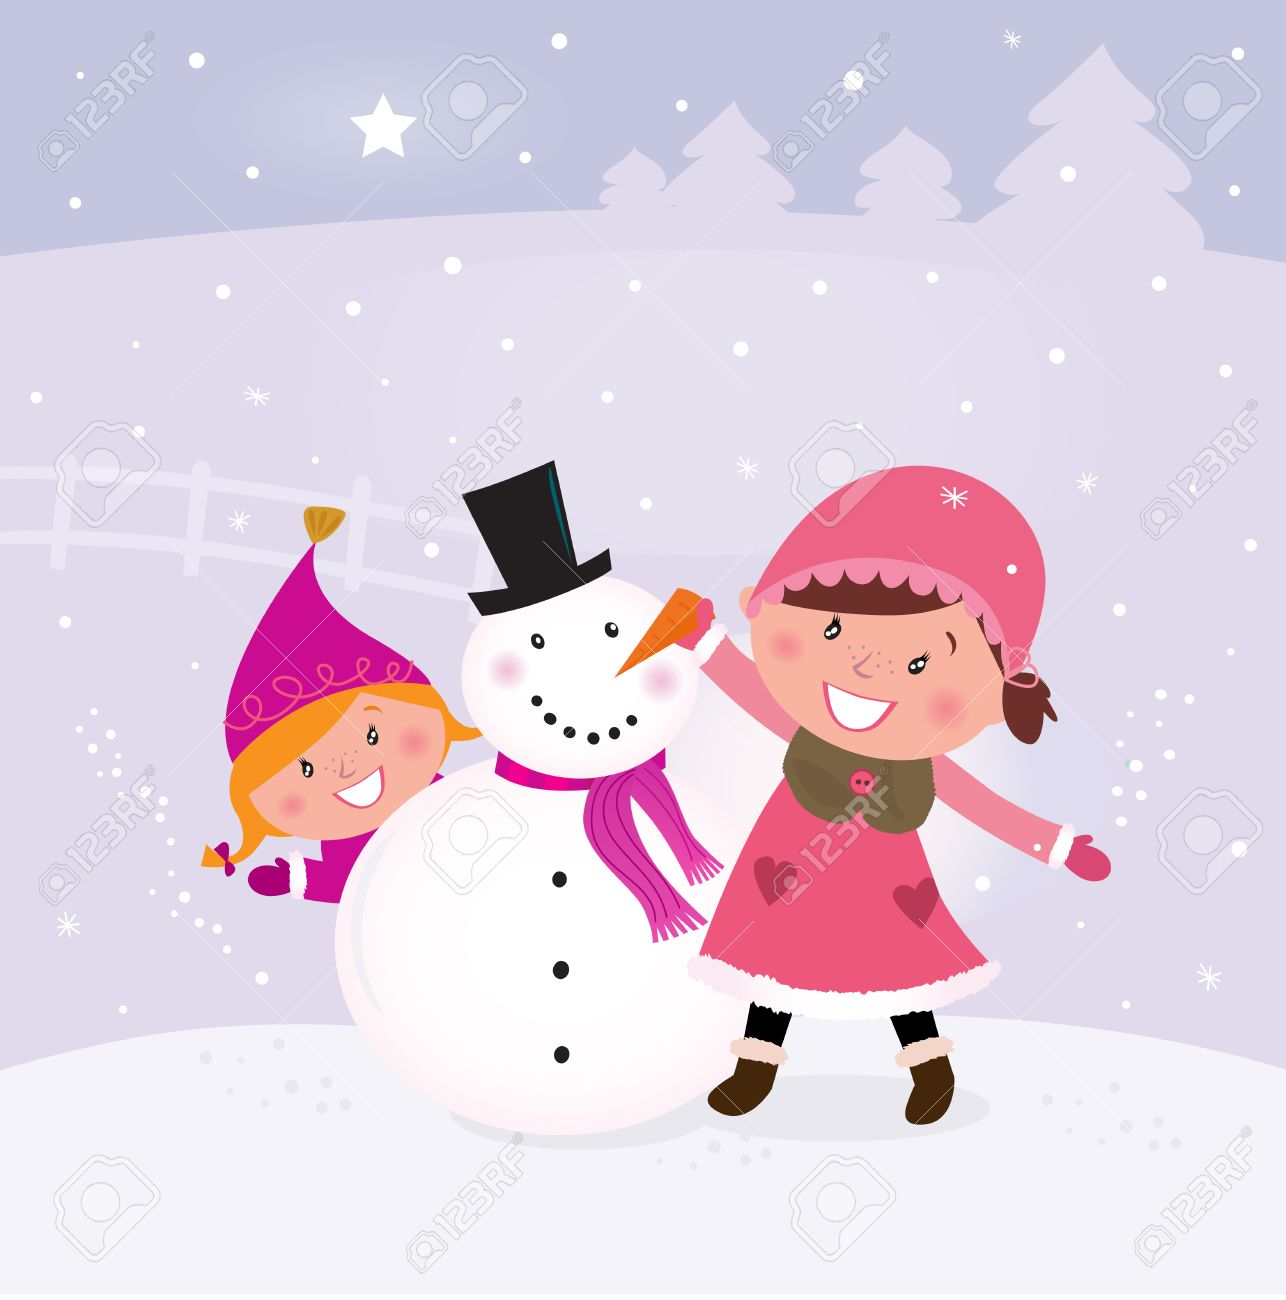 Happy smiling kids in winter costumes making snowman. Vector Illustration. Stock Vector - 8478041